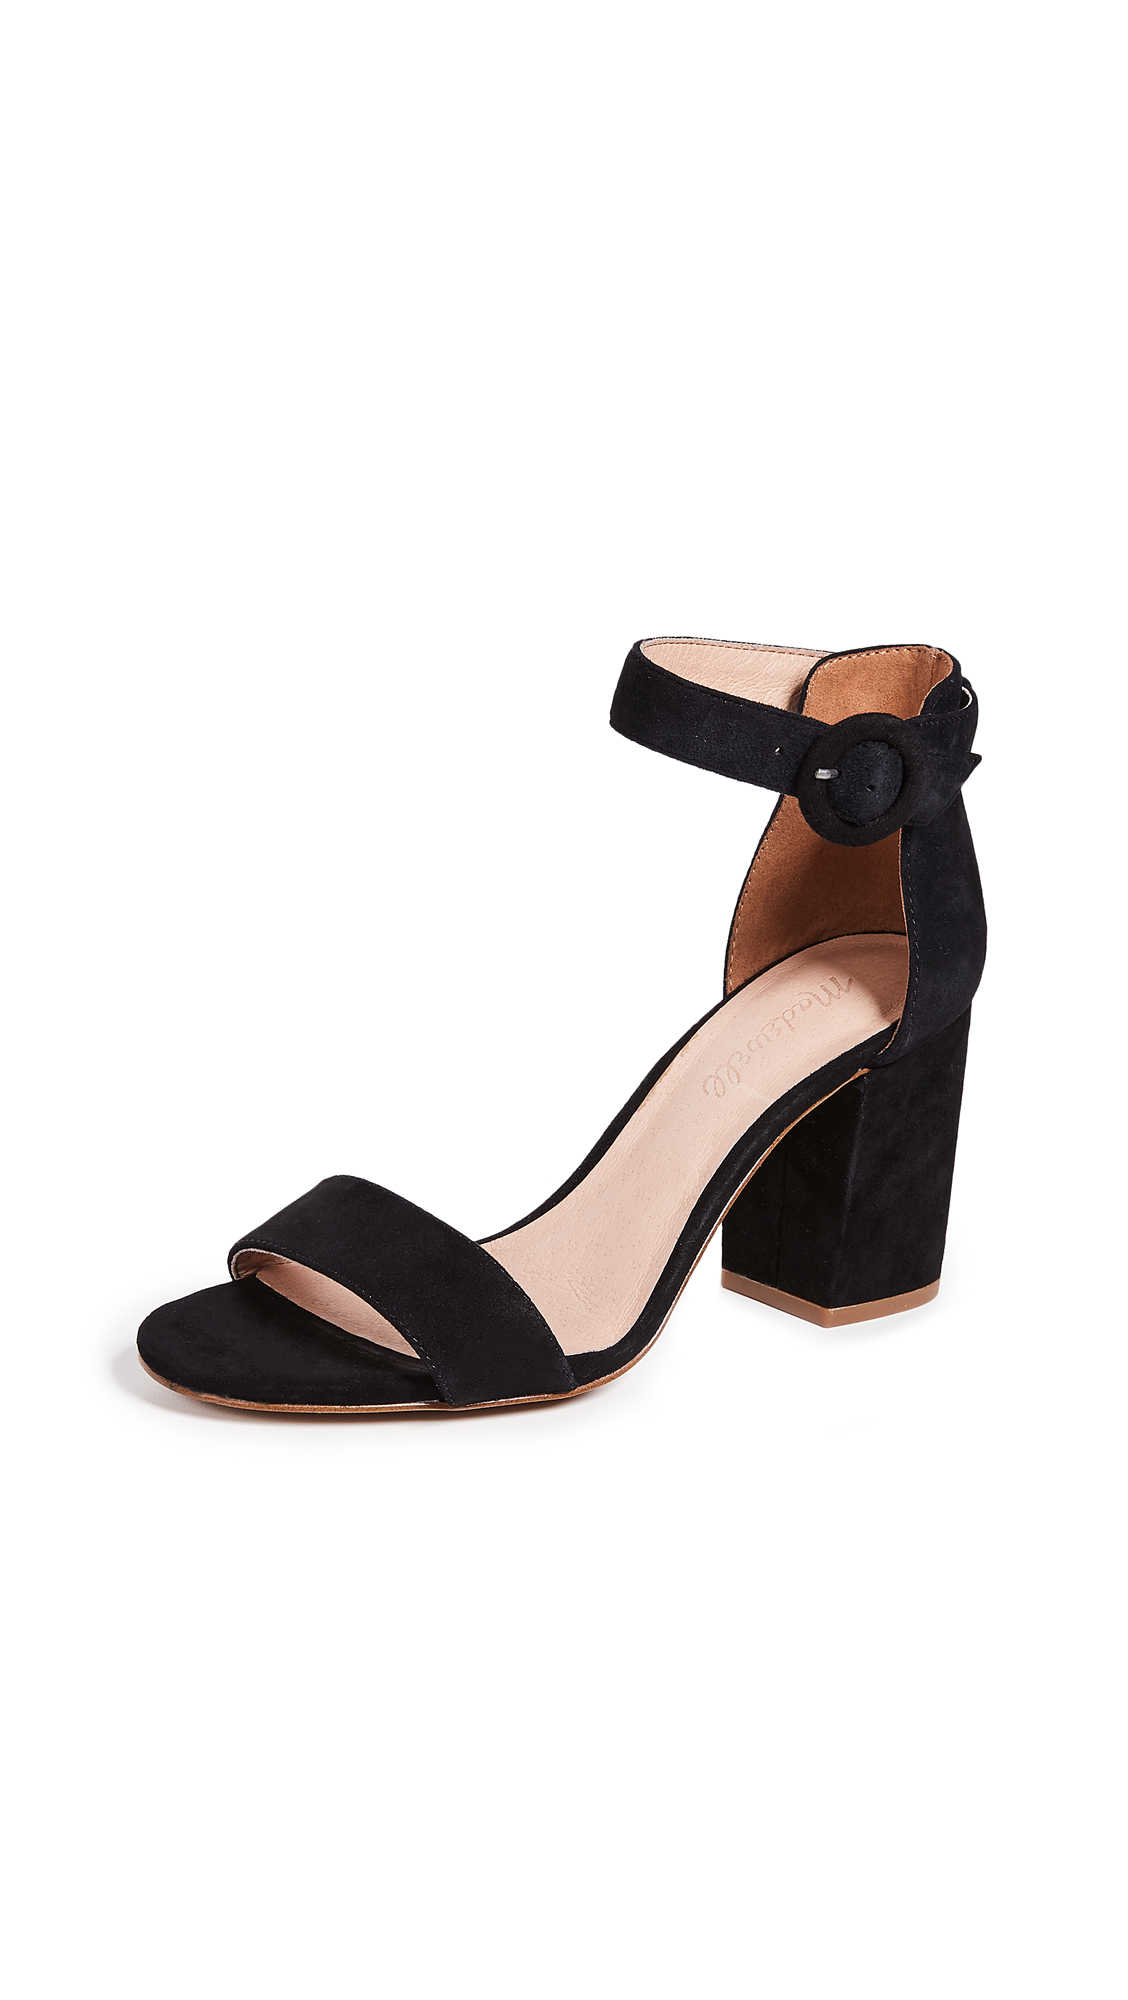 Madewell The Regina Ankle-Strap Sandals